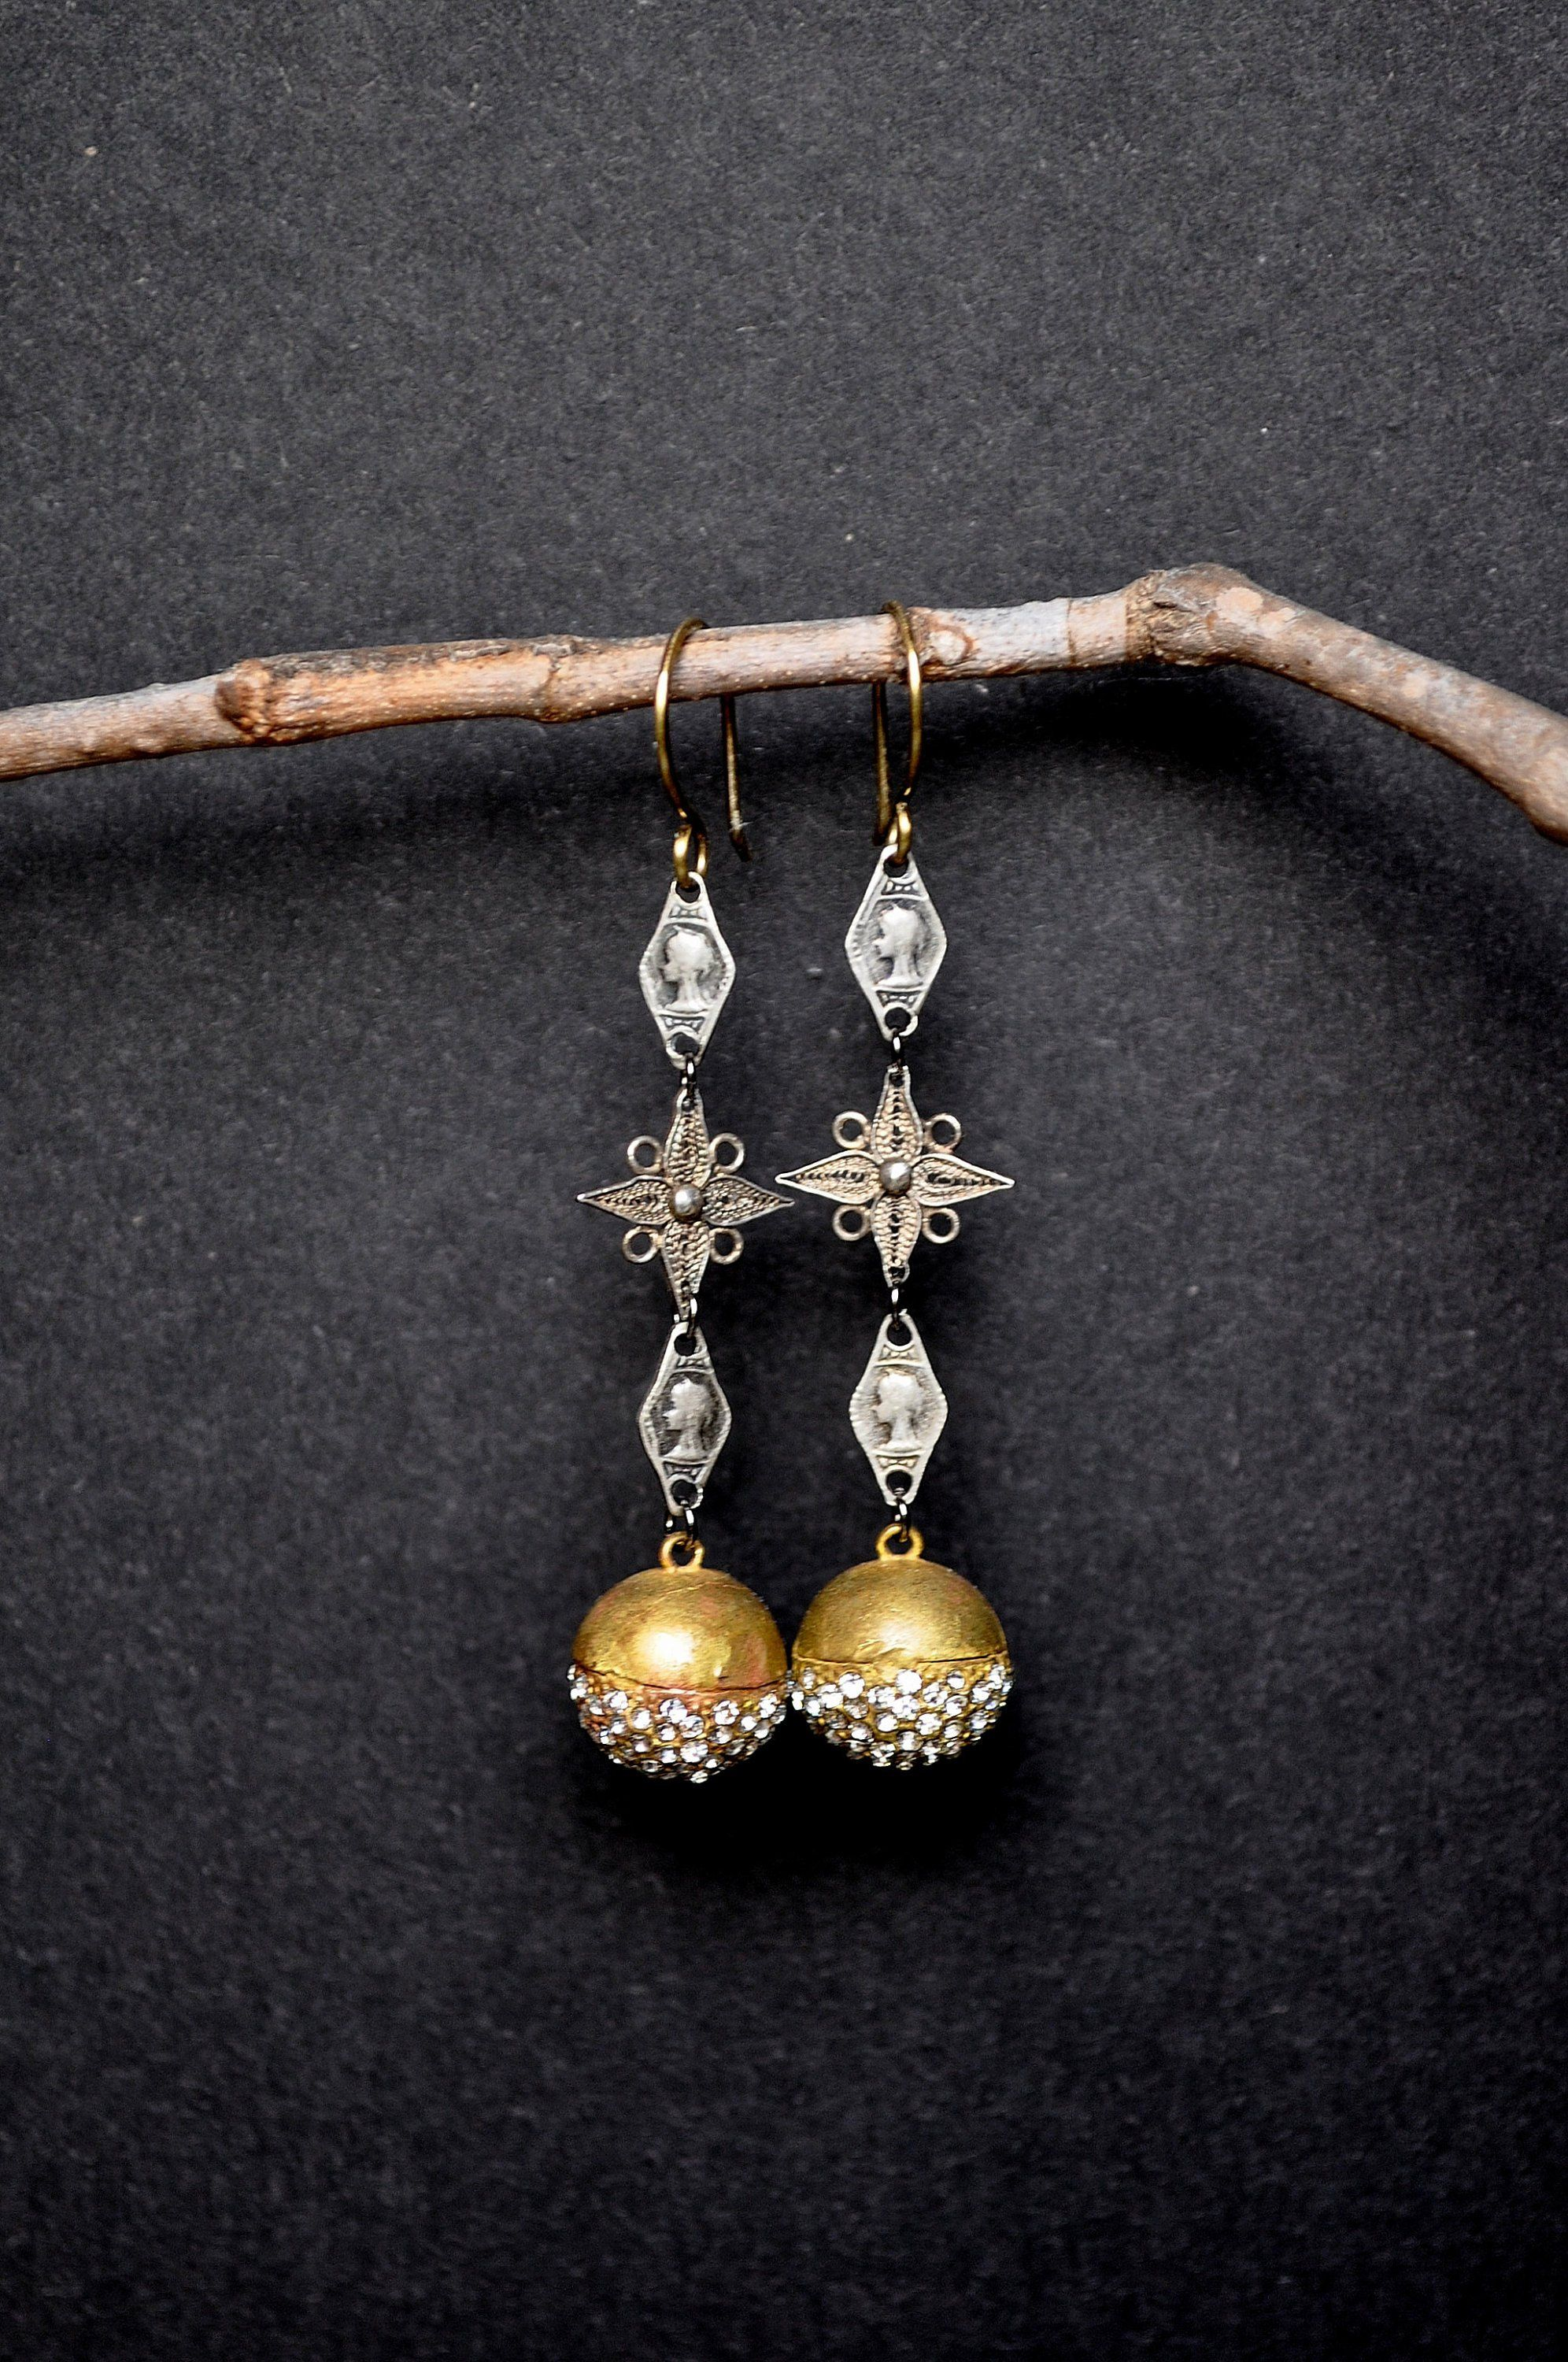 f1ebcad71 Vintage French Rosary Earrings. Repurposed Golden Ball Earrings. Assemblage  Earrings By Hallowed Adornments.